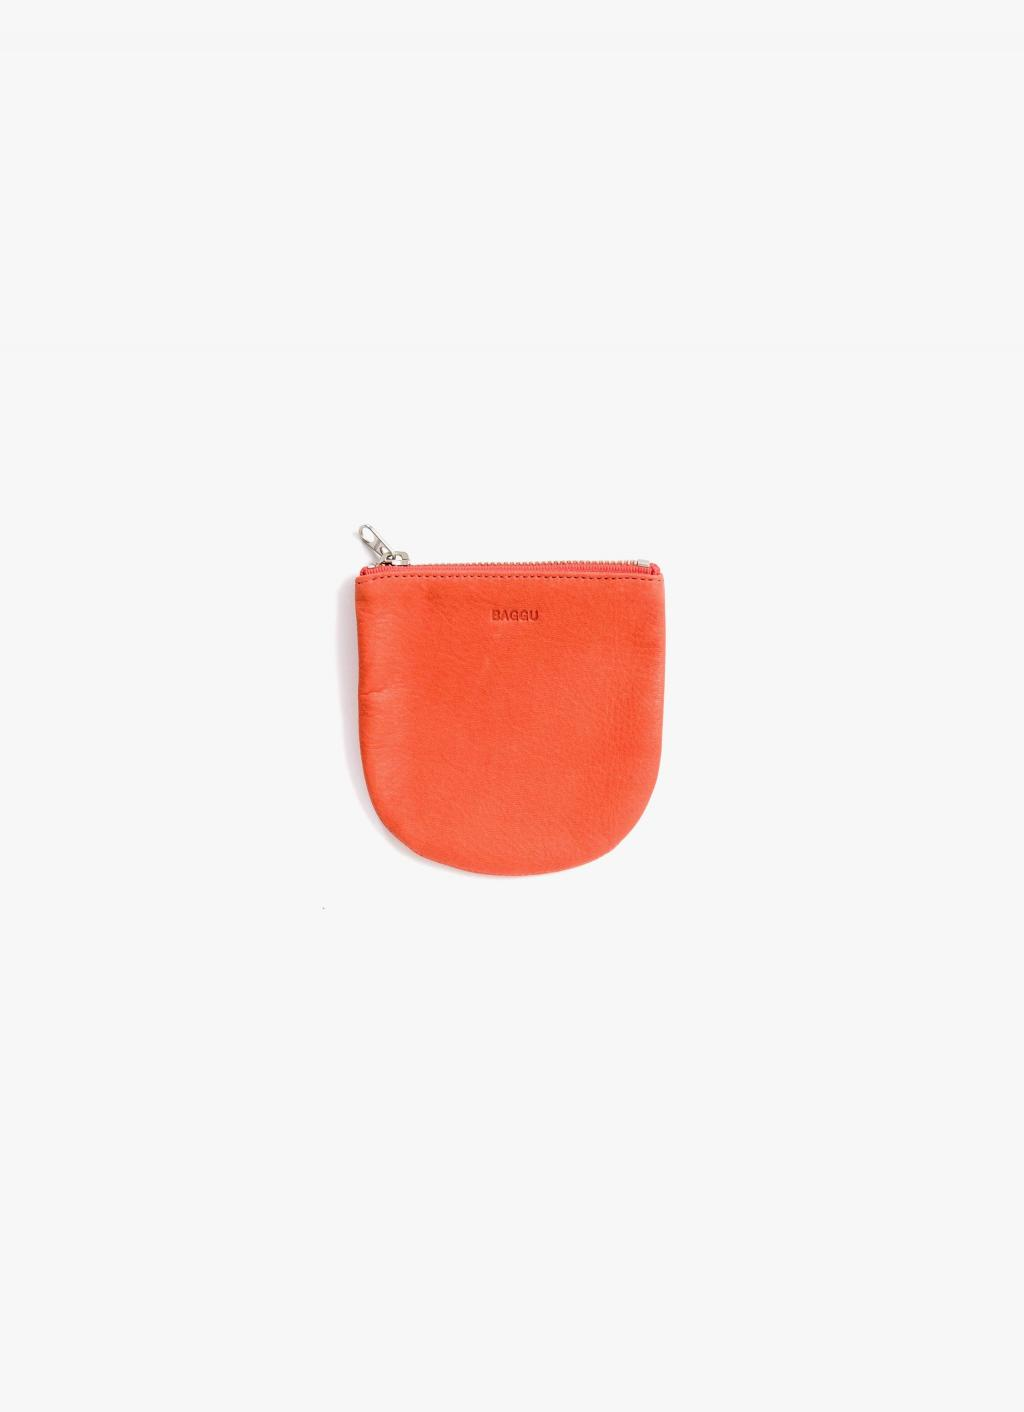 Baggu - Small U Pouch - Warm Red - Leather